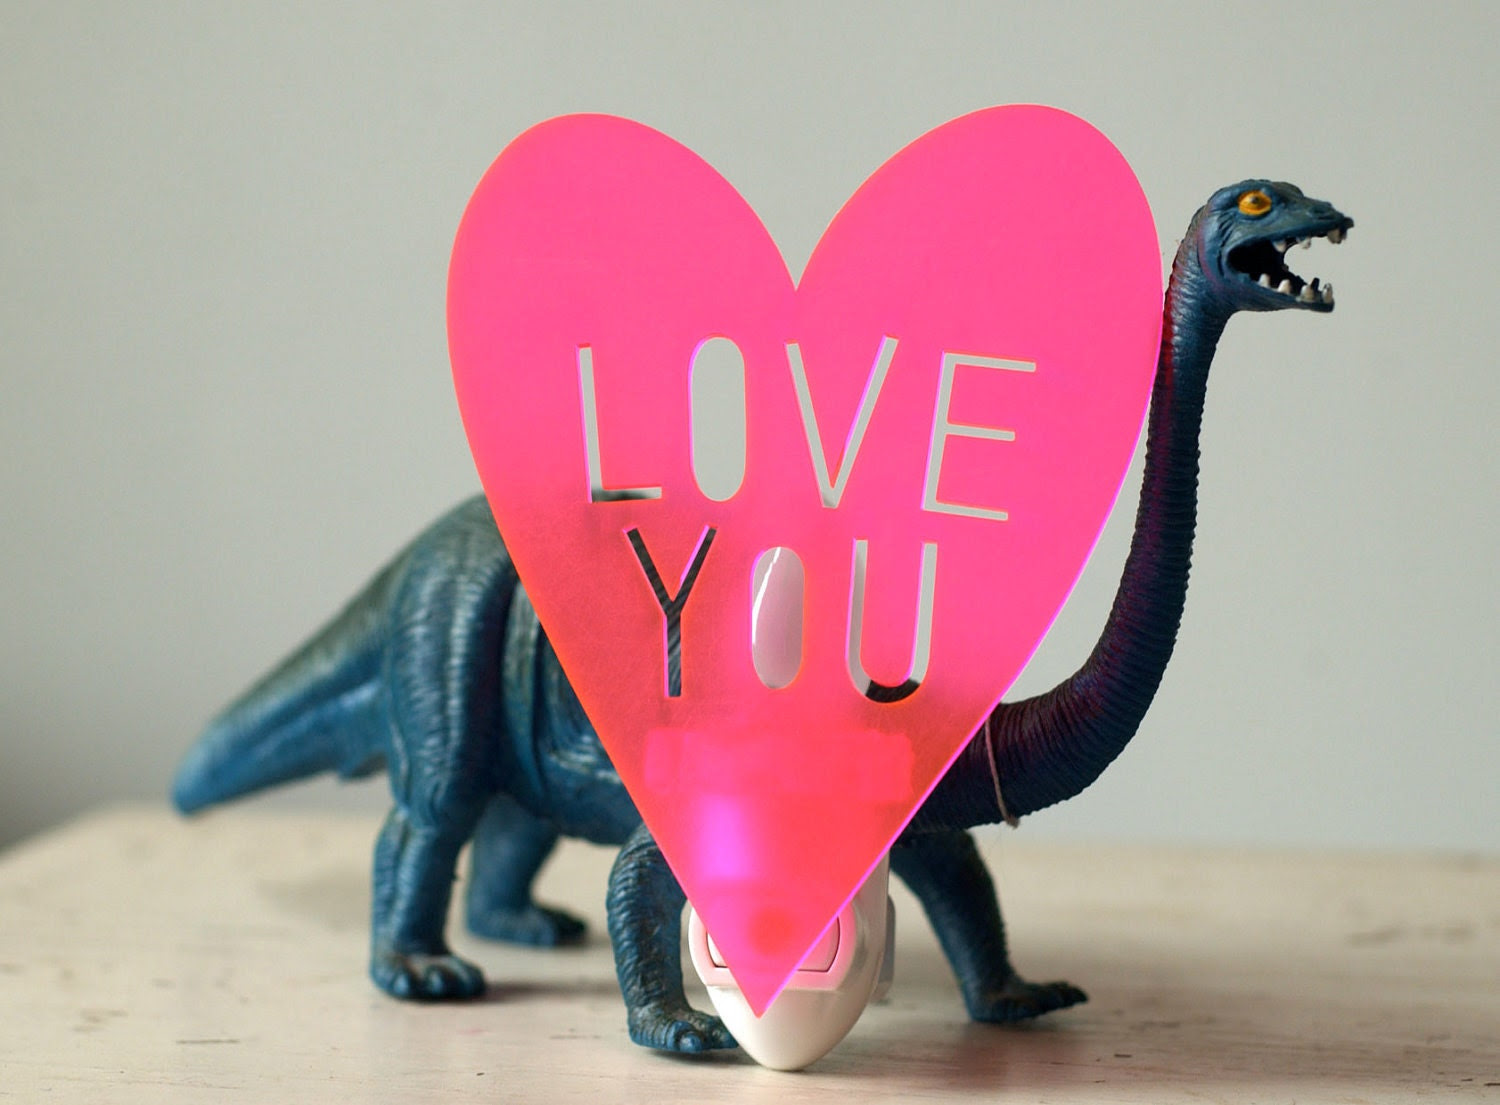 LOVE YOU night light in neon pink